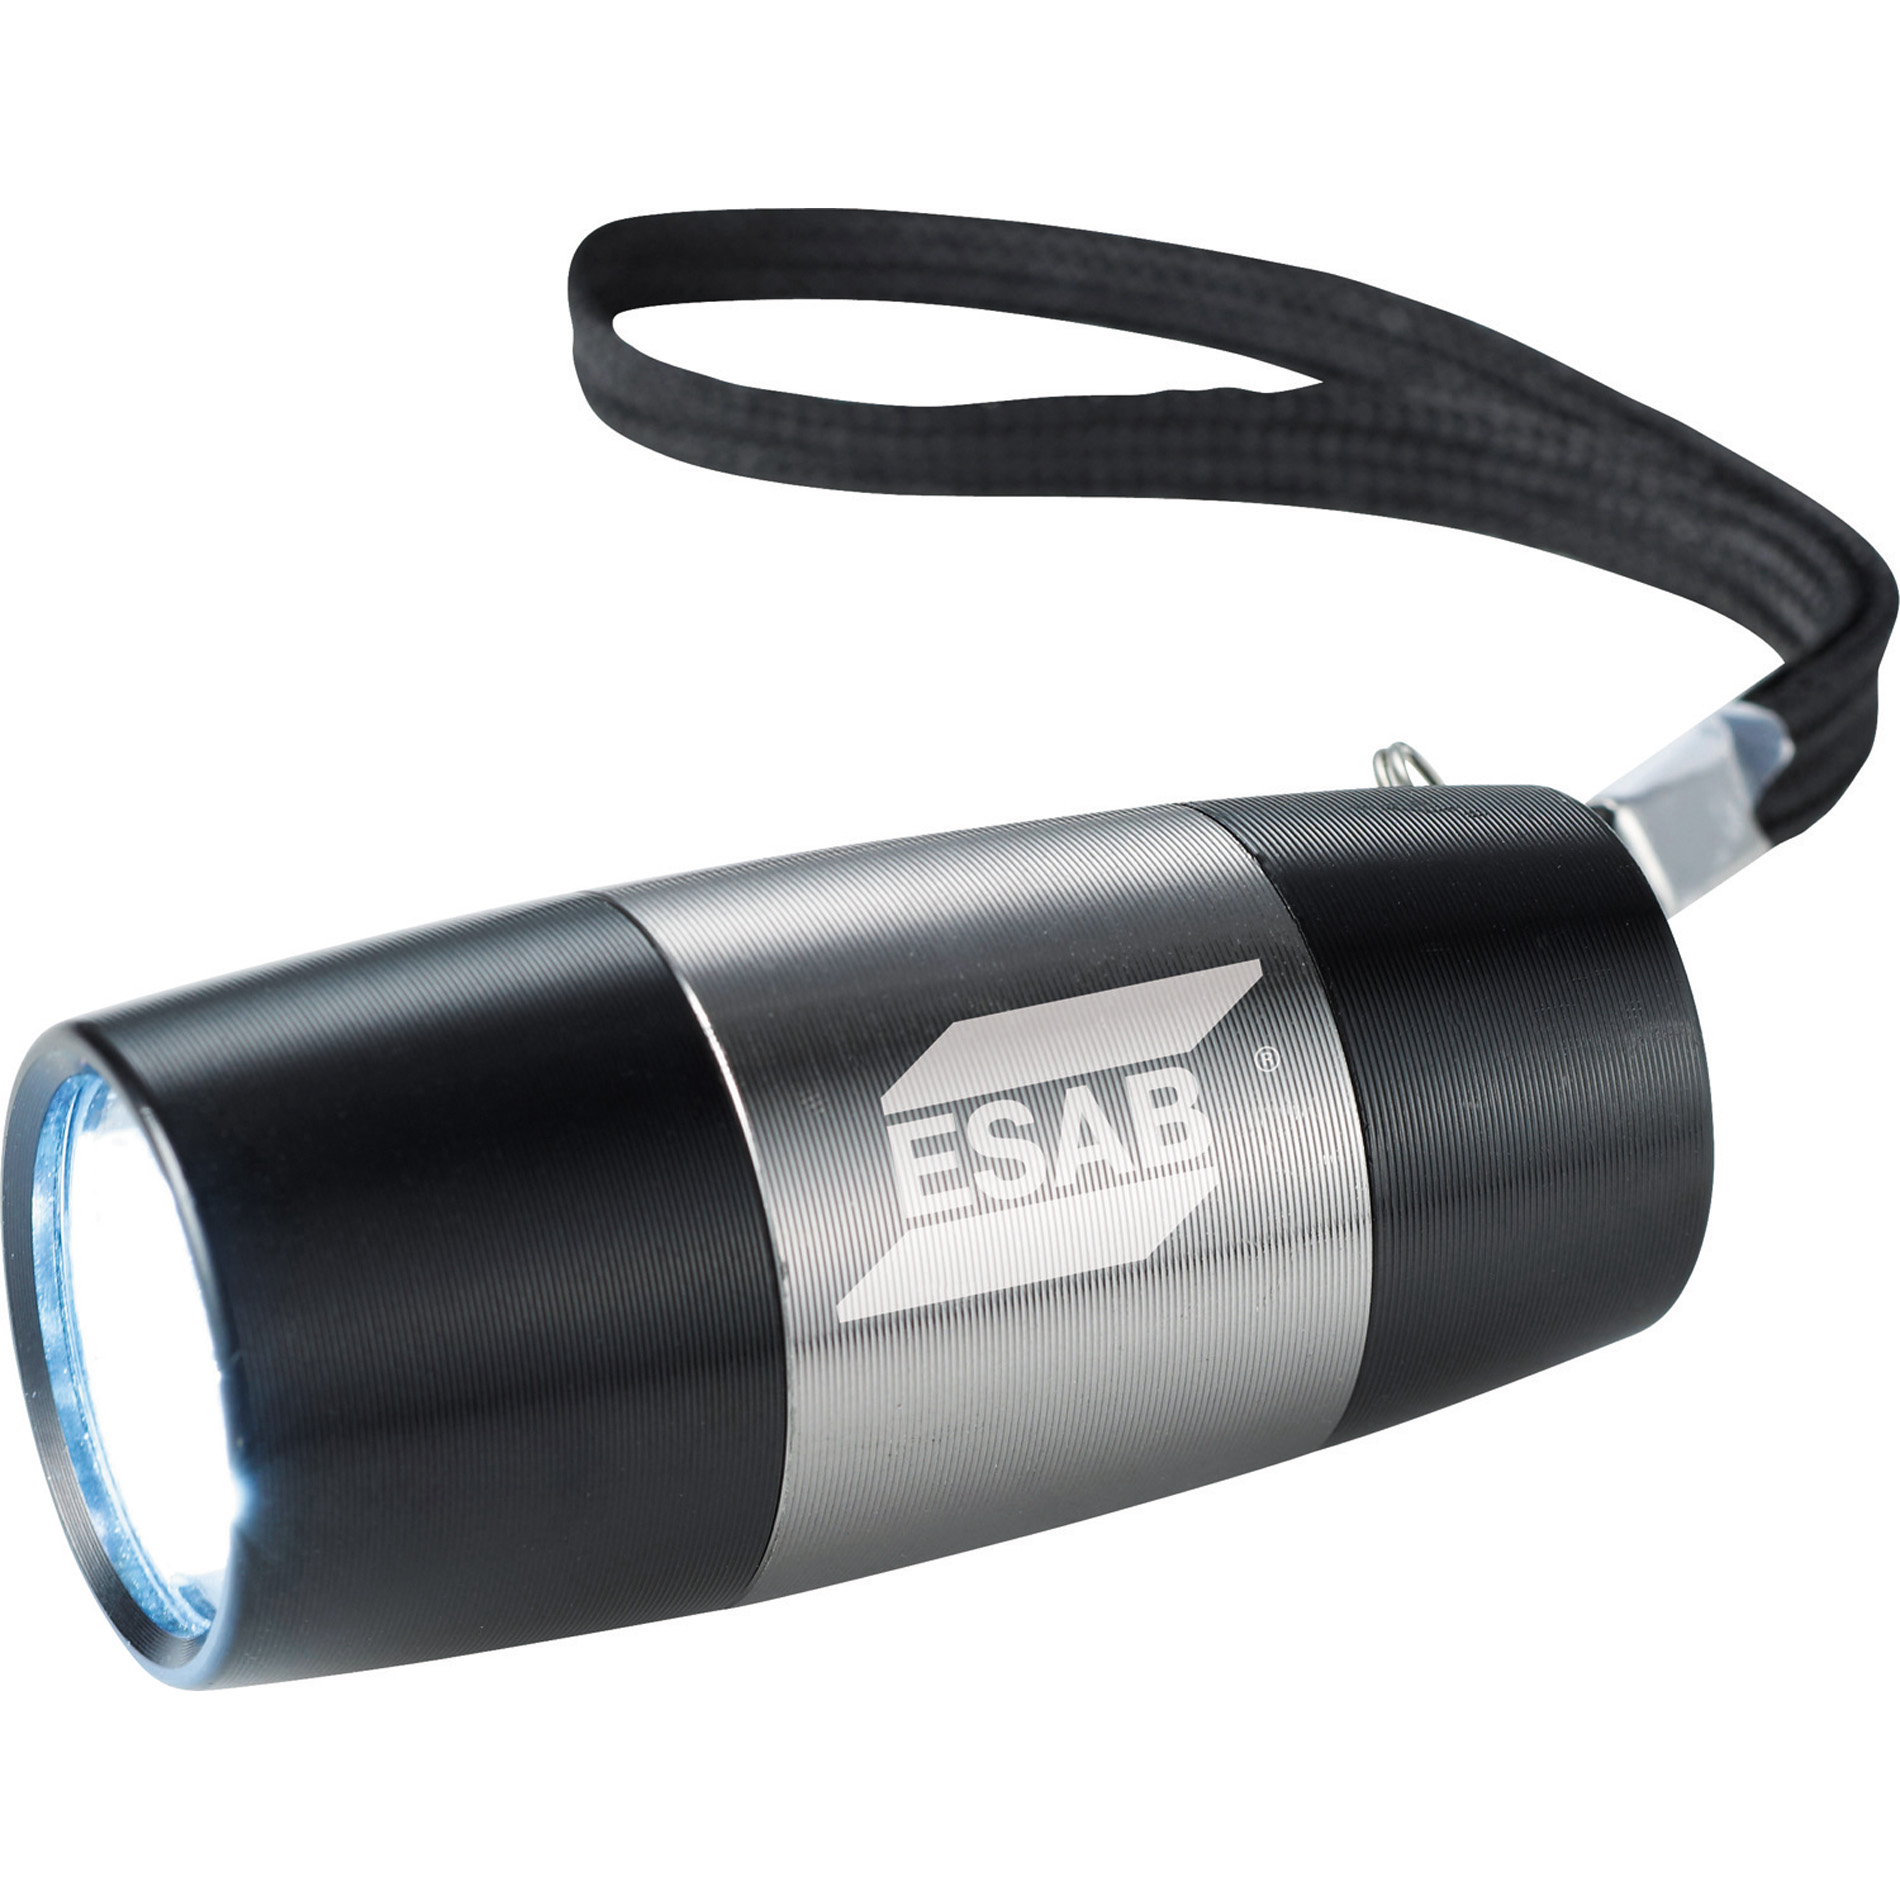 Promotional Gifts & Kits | Flashlights